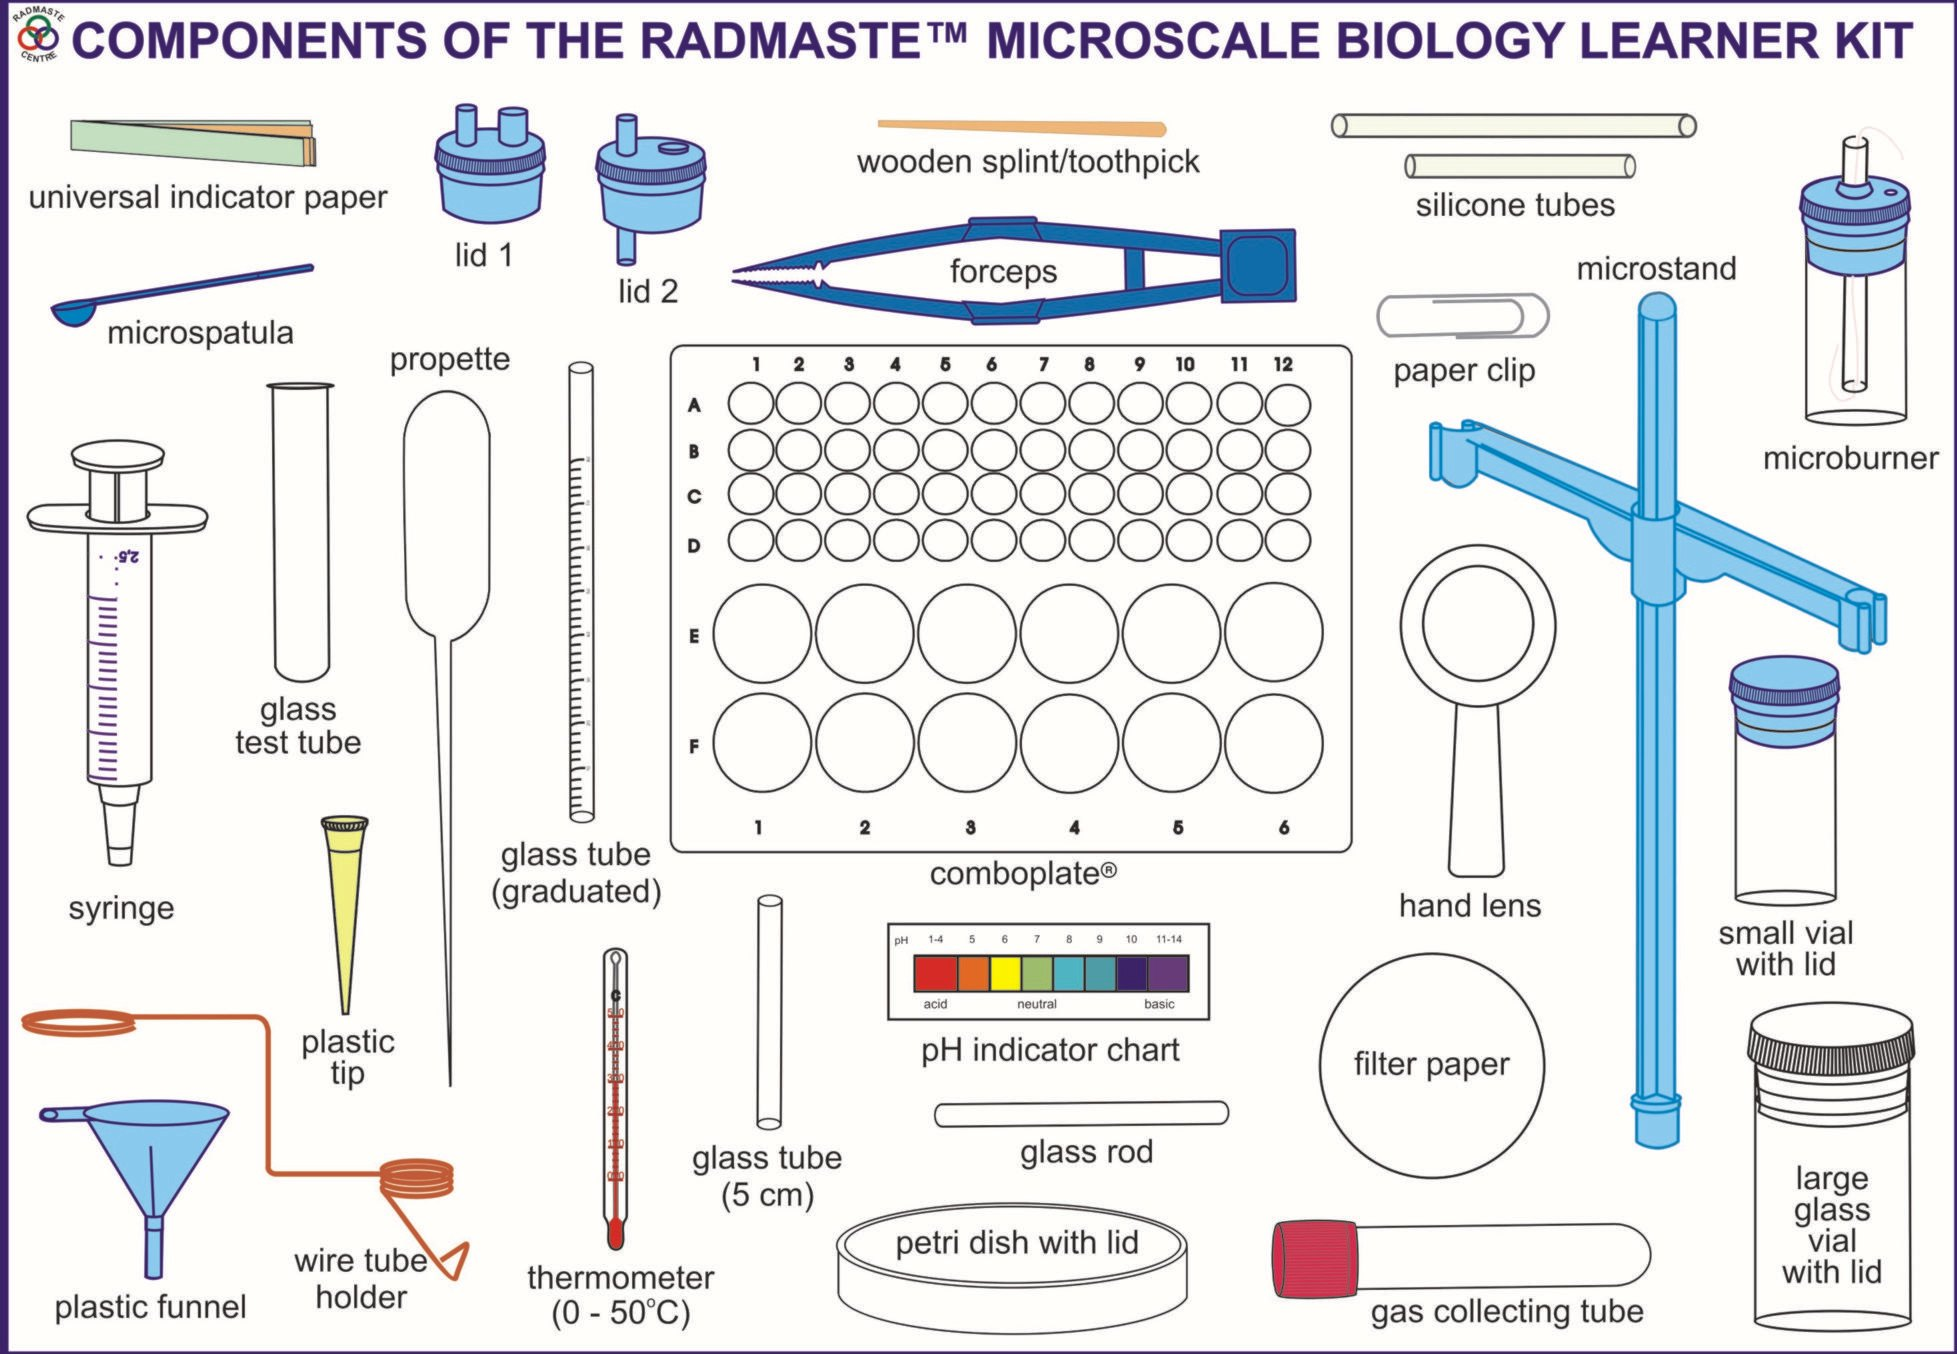 The RADMASTE Microscale Biology Kit allows learners to perform many life sciences activities at senior secondary level.